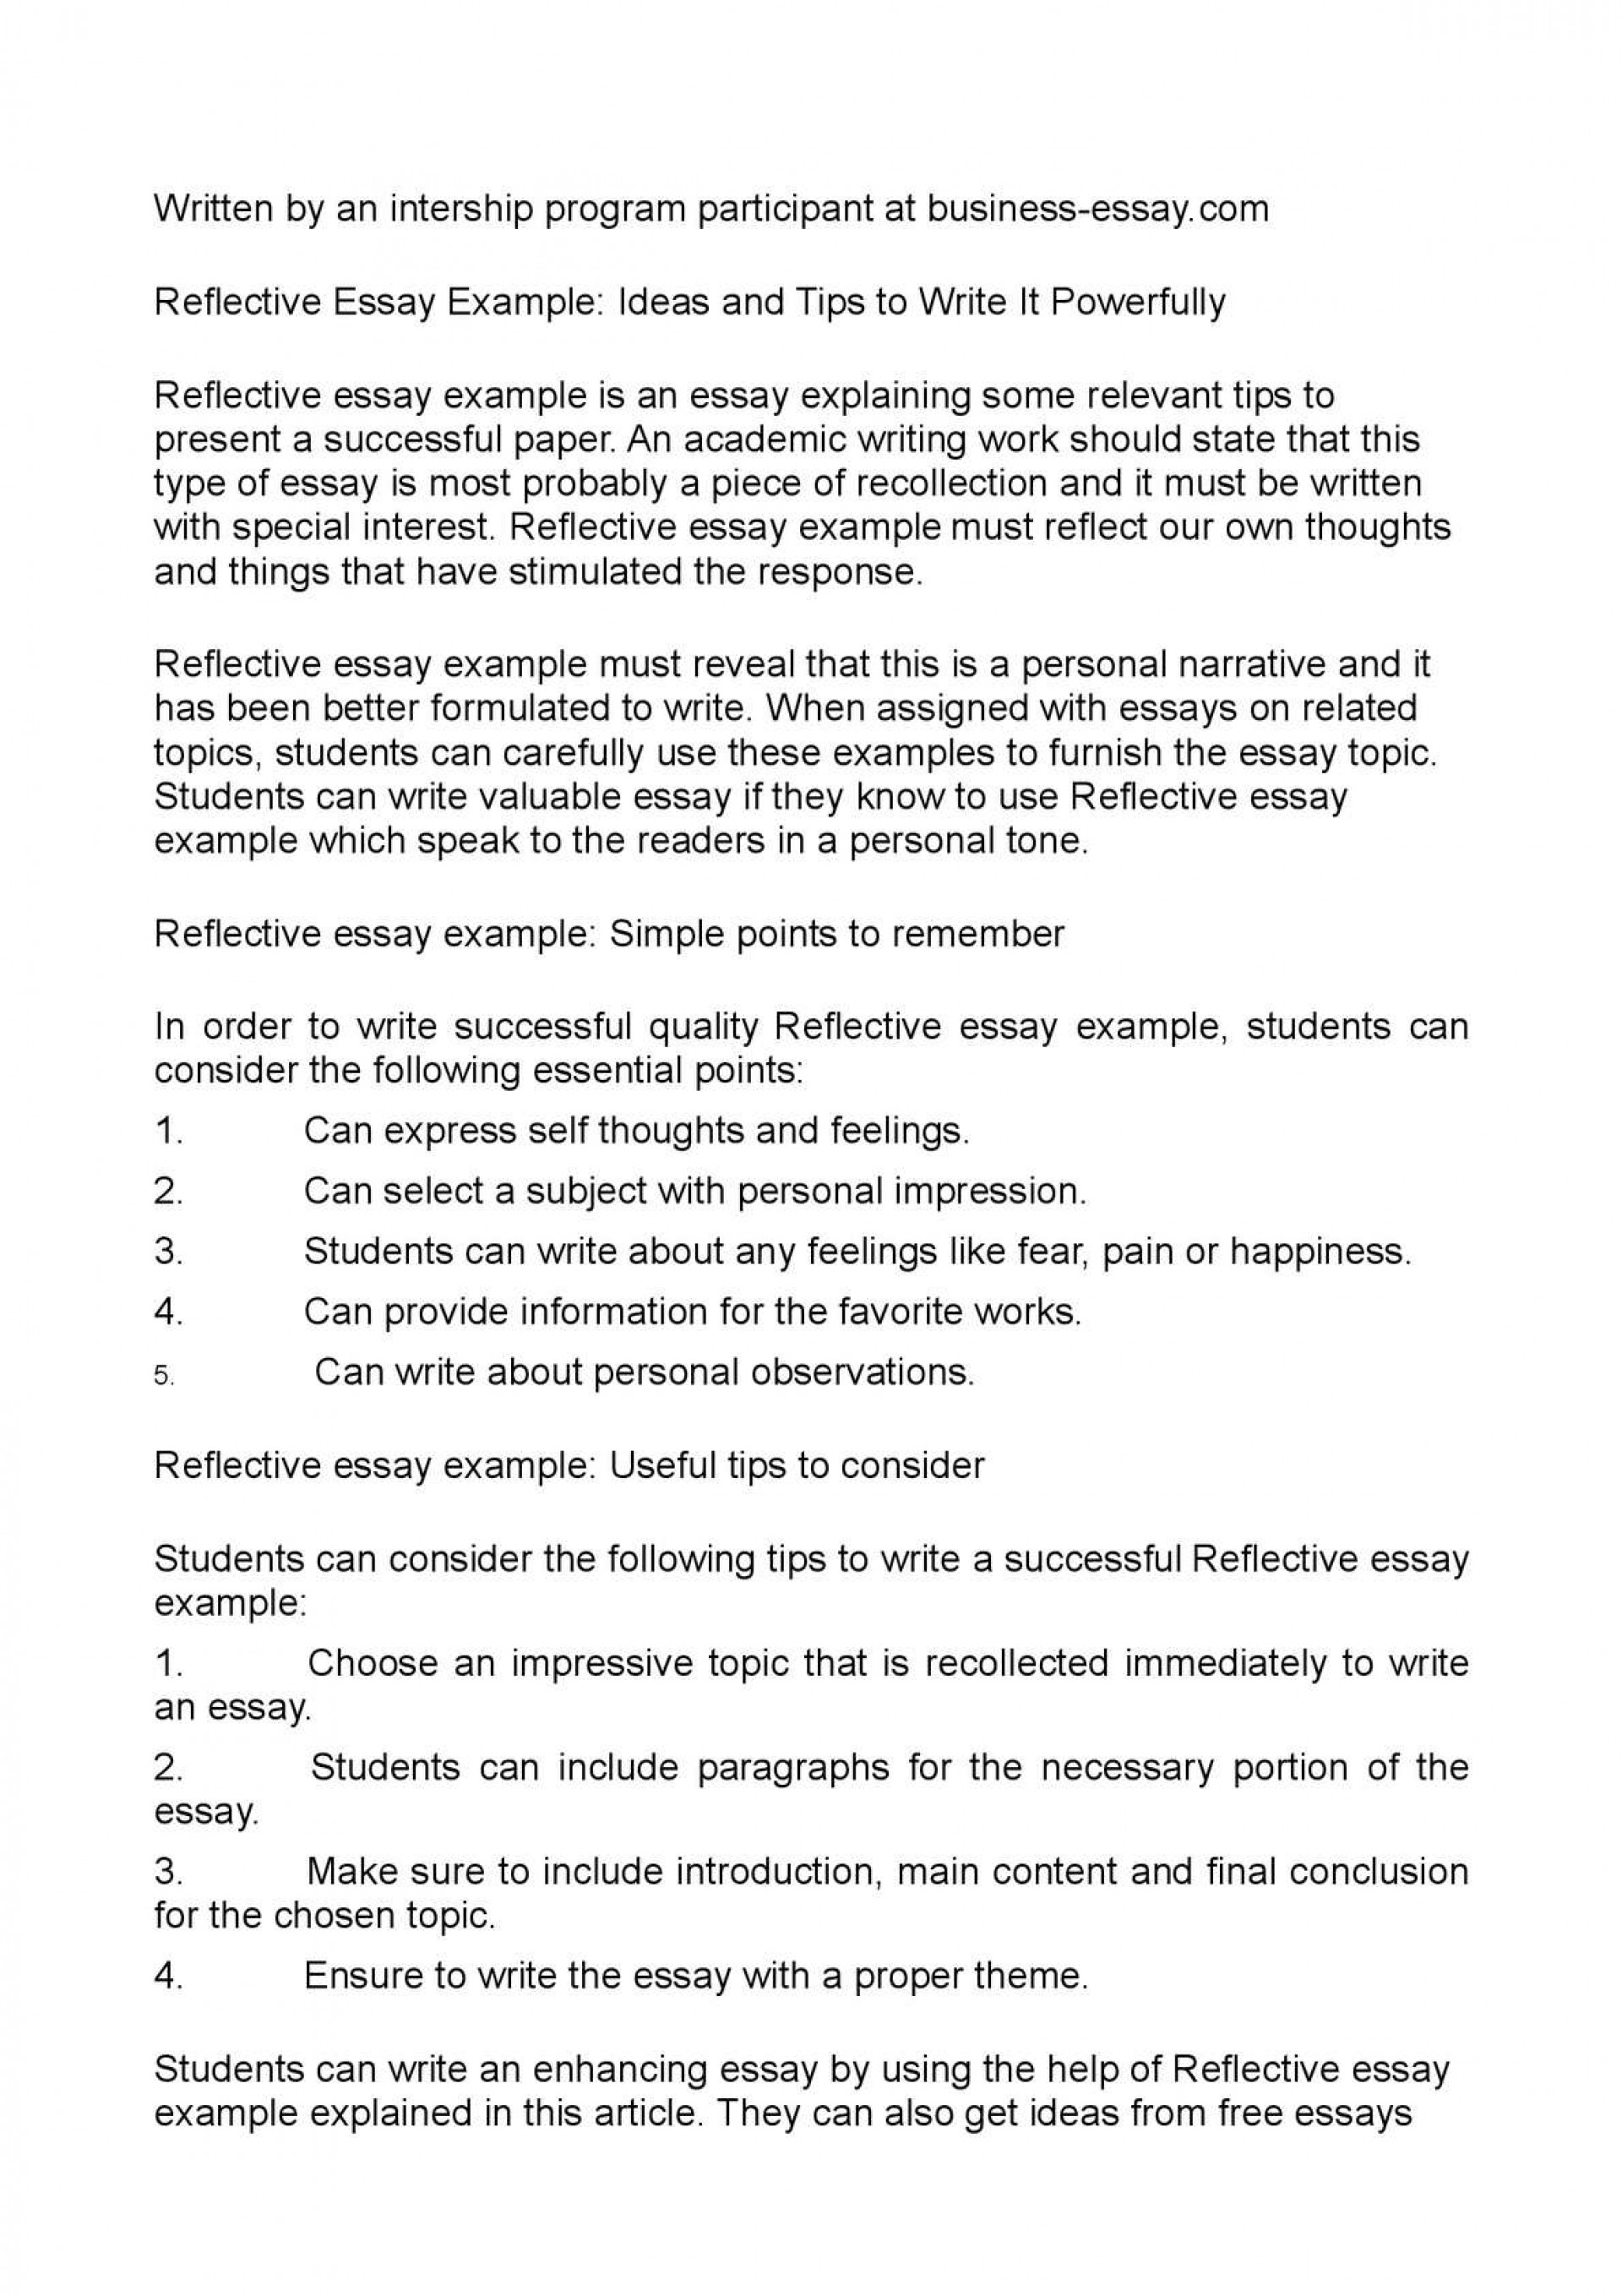 how to introduce a personal reflective essay  applydocoumentco